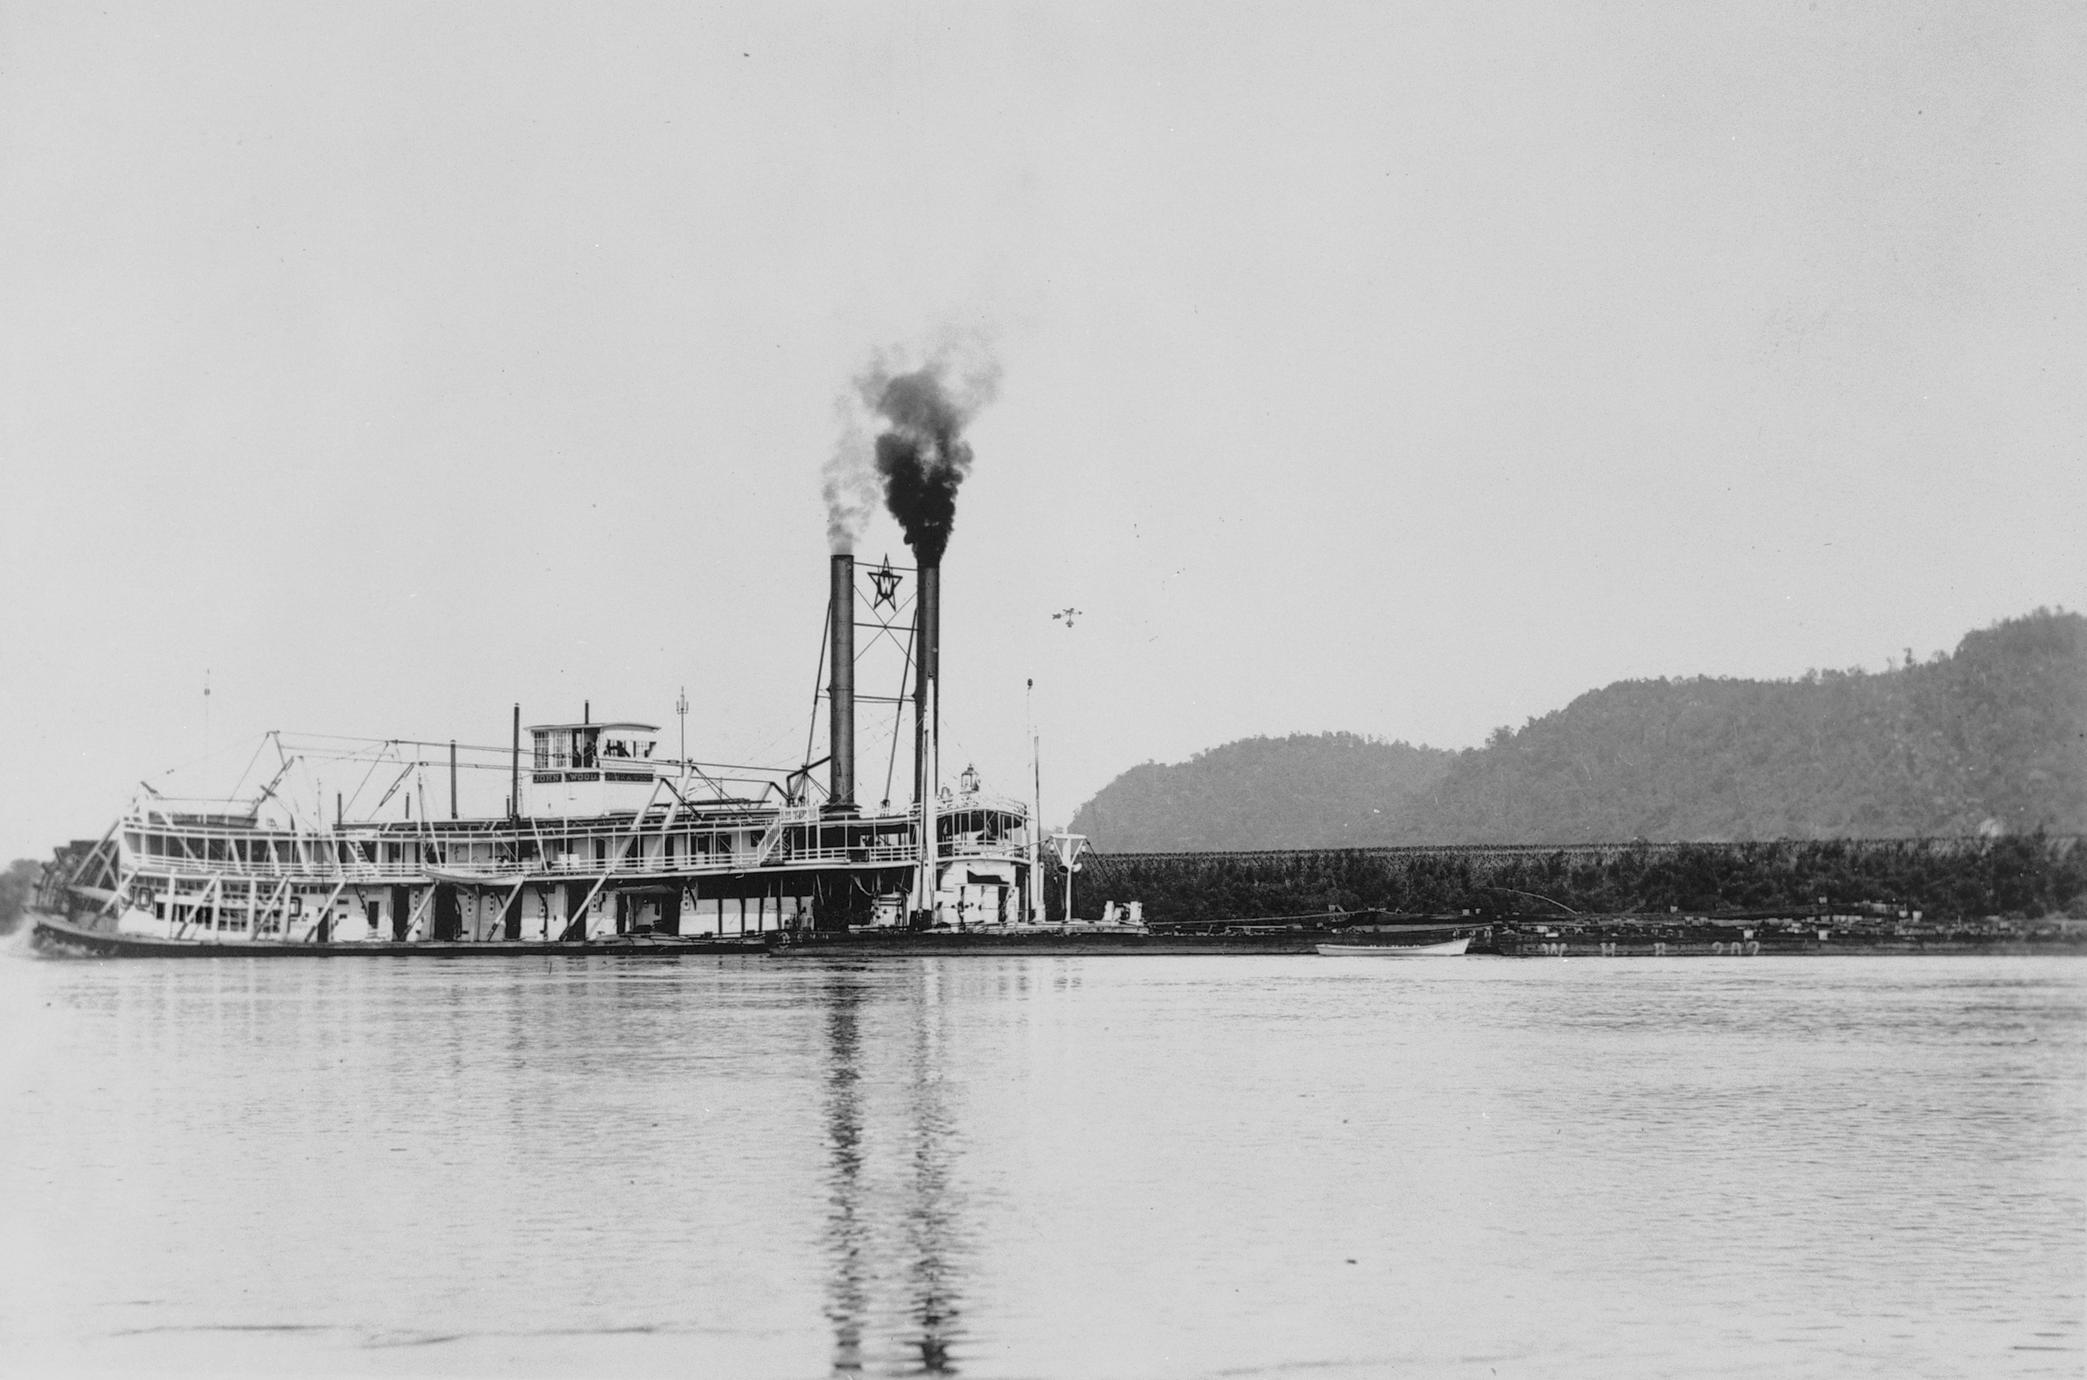 John W. Wood (Towboat)